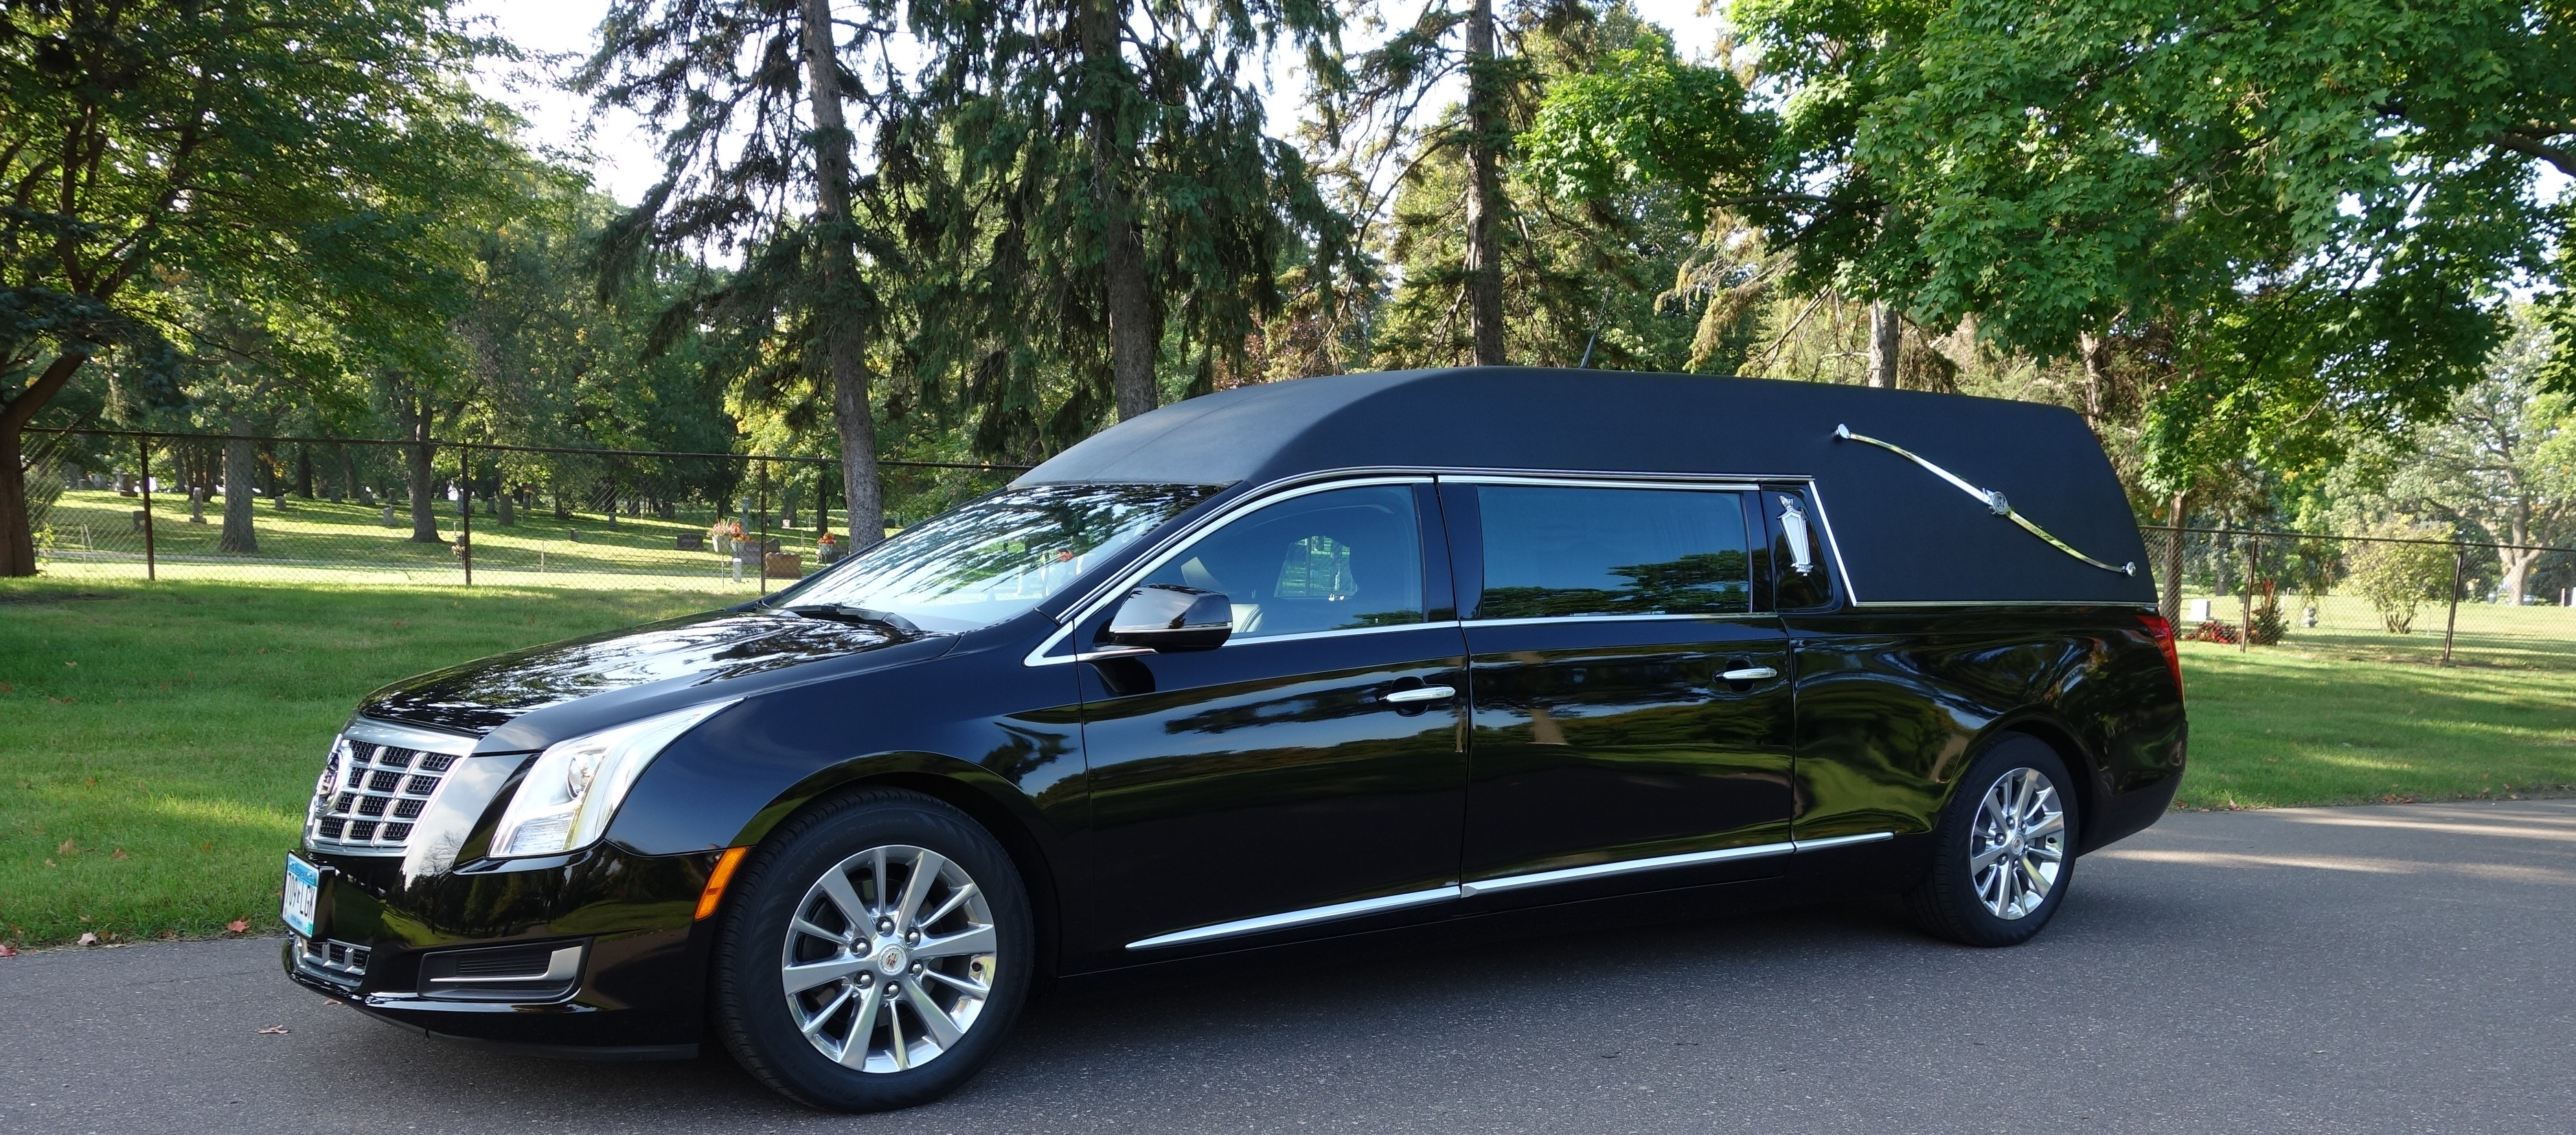 2014 Black Cadillac Federal side